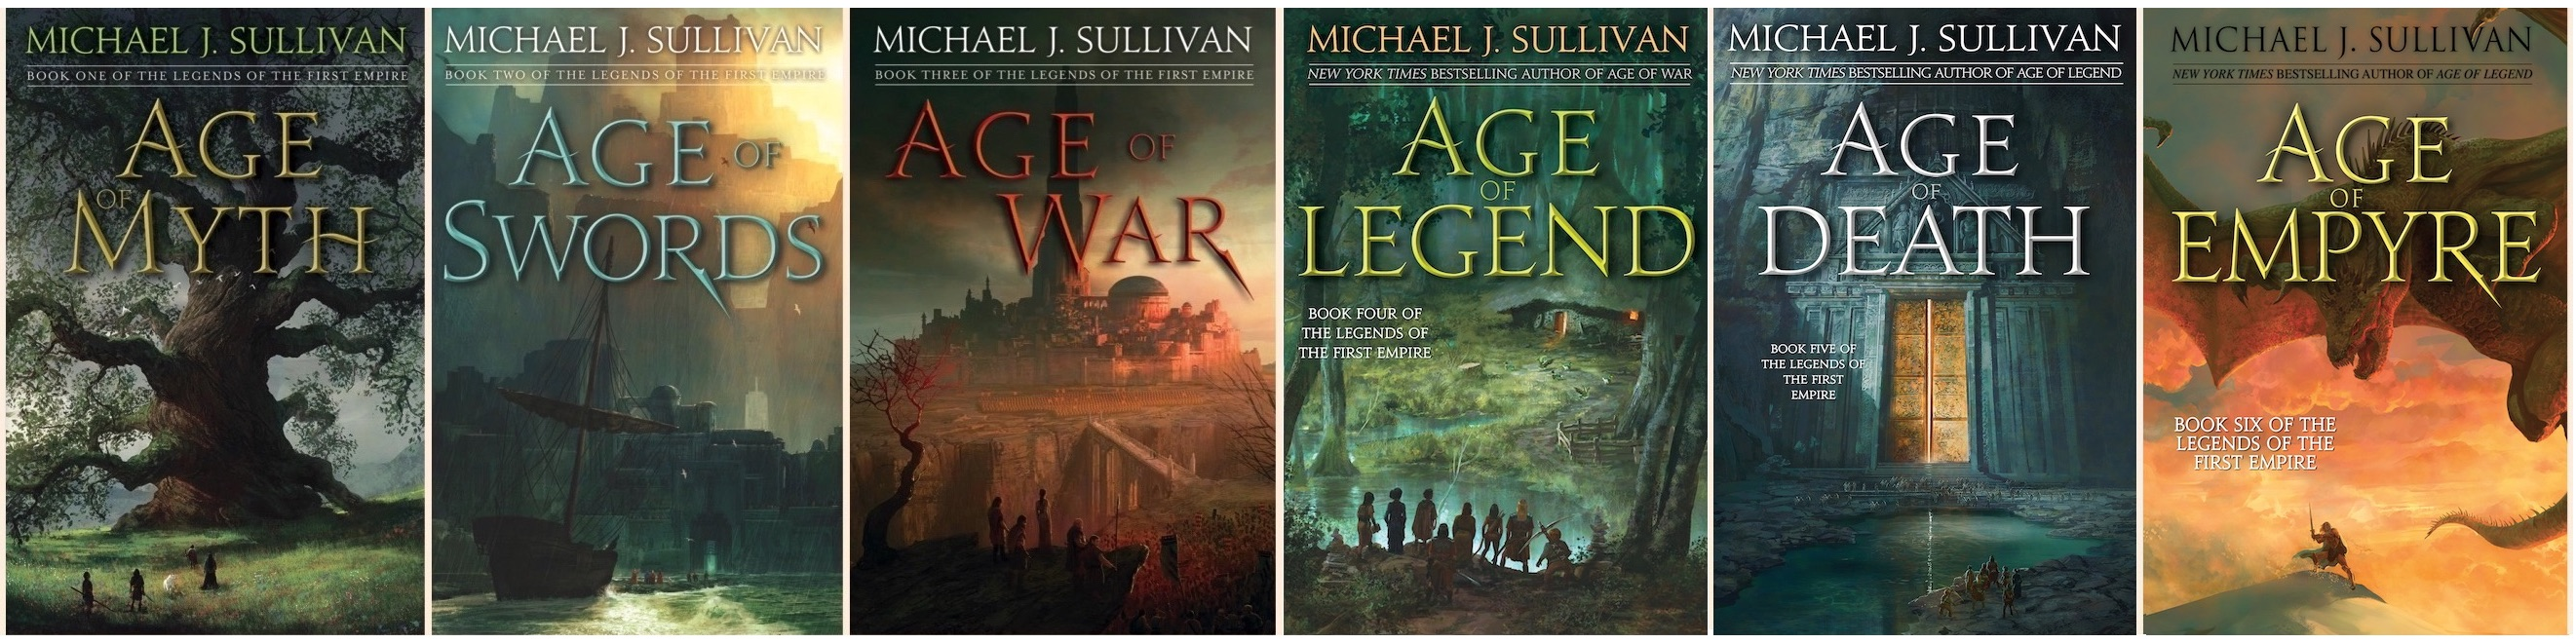 Legend of the First Empire Covers